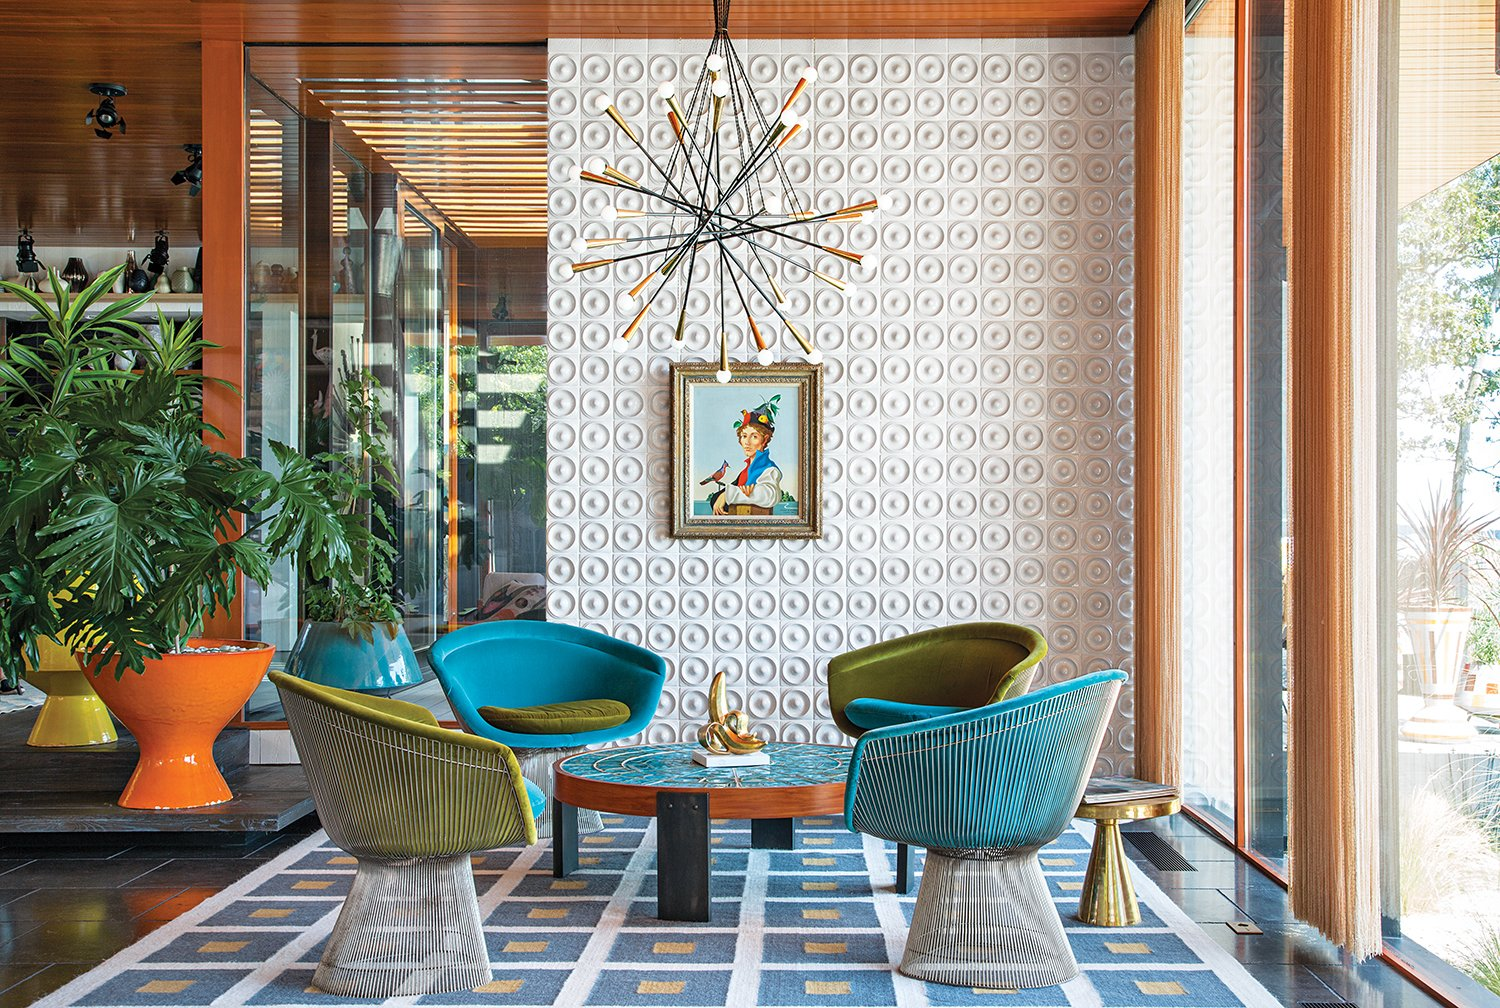 """There's no right answer except to play and experiment,"" Adler says about furnishing the interior. He reupholstered vintage Warren Platner chairs with velvet from Kravet. Drawings by Eva Hesse inspired the custom ceramic wall tile. Adler also created the coffee table, rug, planters, and gold stool. The pendant lamp is from Rewire in Los Angeles and the artwork is by Jean-Pierre Clément. Tagged: Living Room, Ceiling Lighting, Coffee Tables, Chair, Rug Floor, and Pendant Lighting.  Photo 3 of 10 in Jonathan Adler and Simon Doonan's Shelter Island Vacation Home"